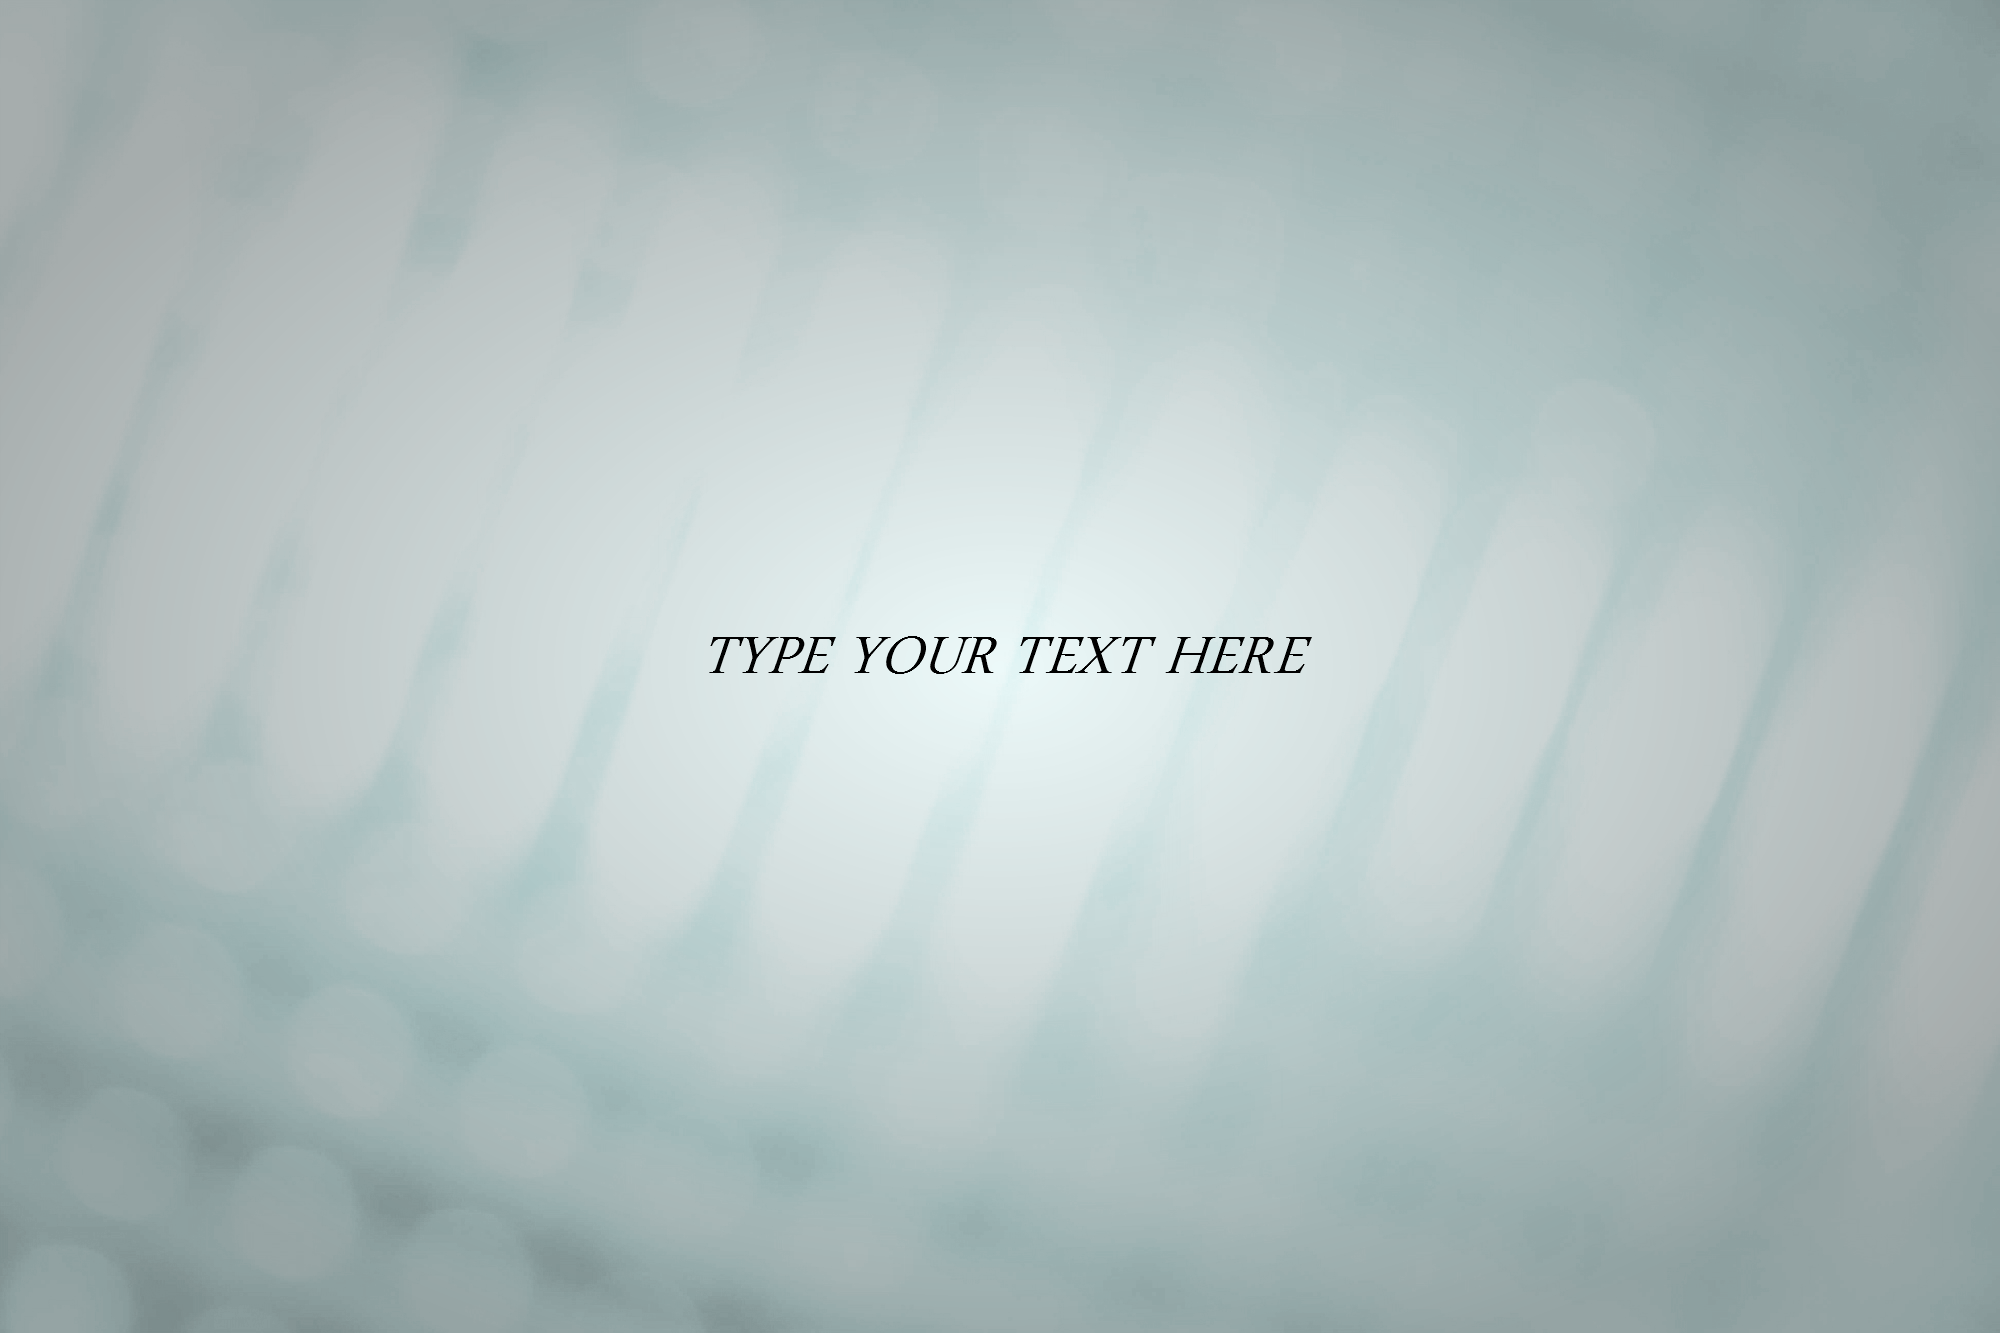 Type your text here, 2016.